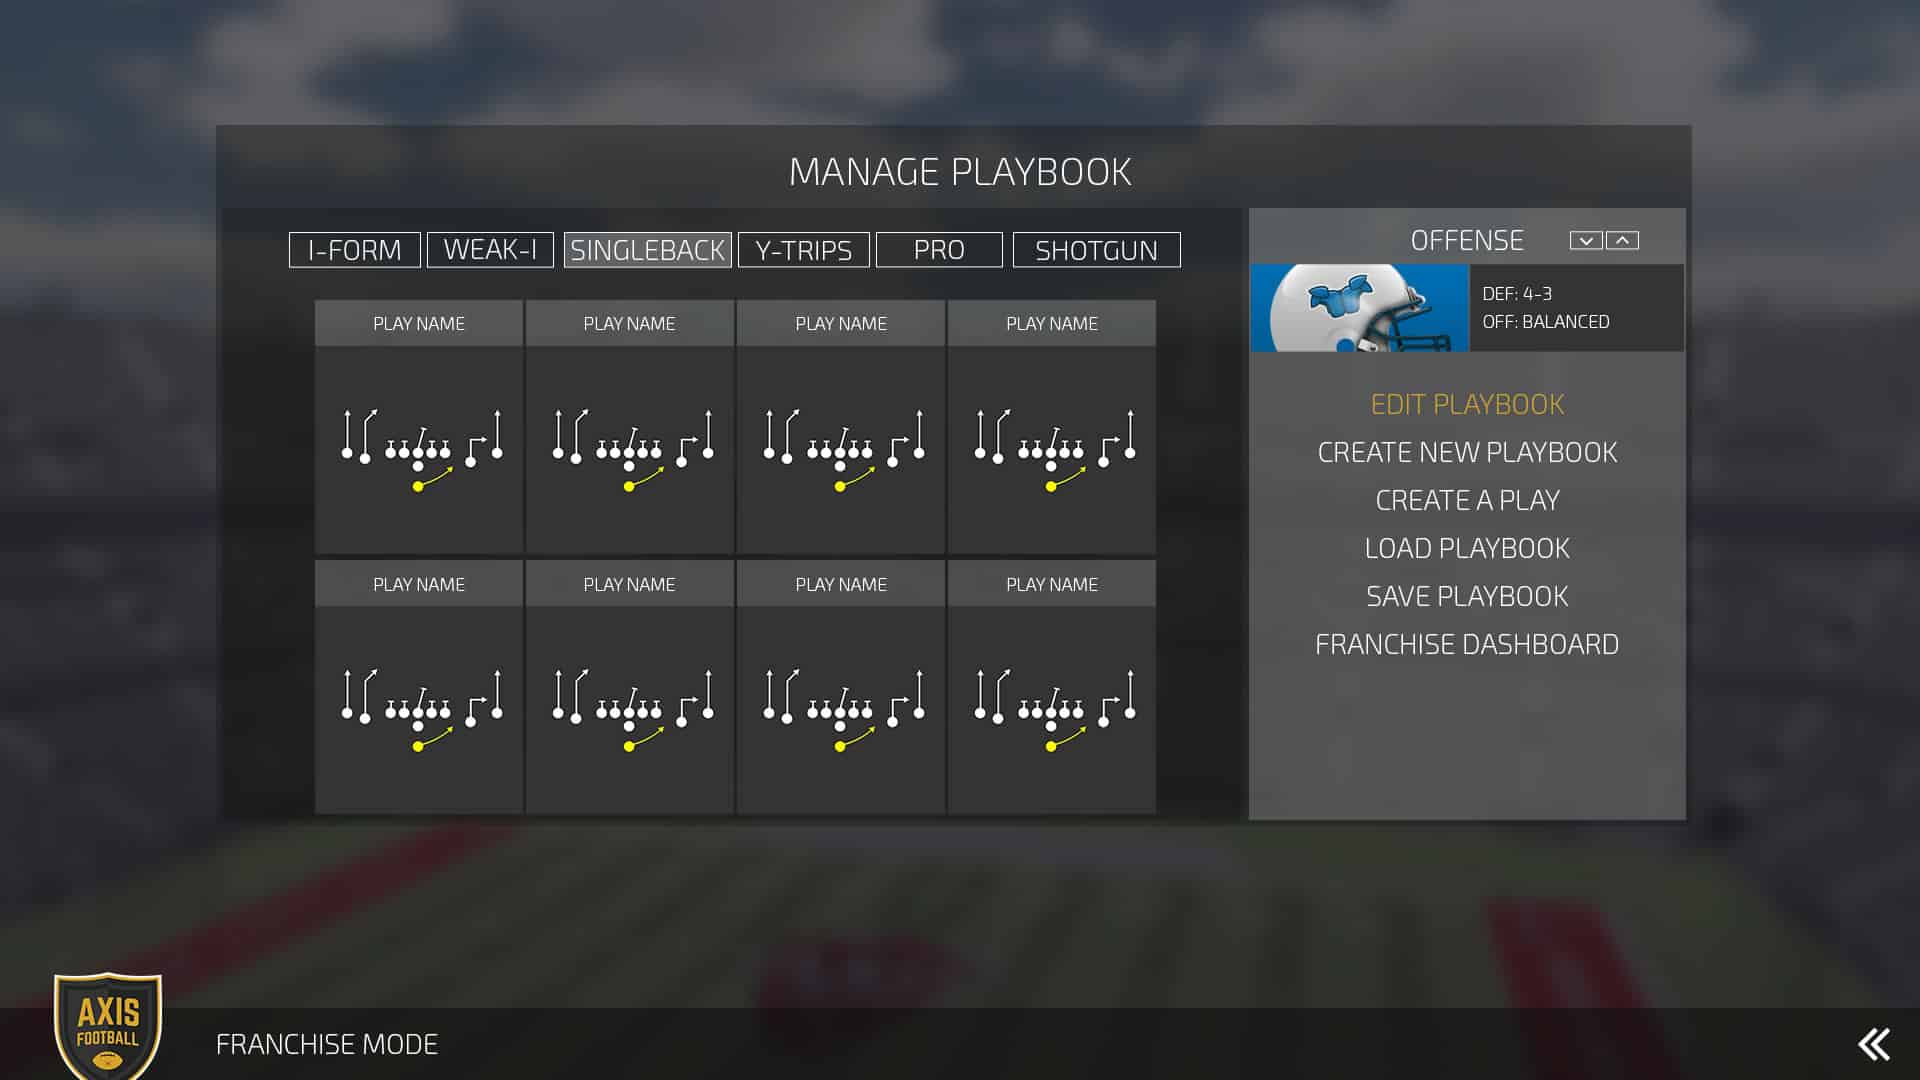 Edit_Formation1_Manage_Playbook_AxisFootball_UI_1920x1080